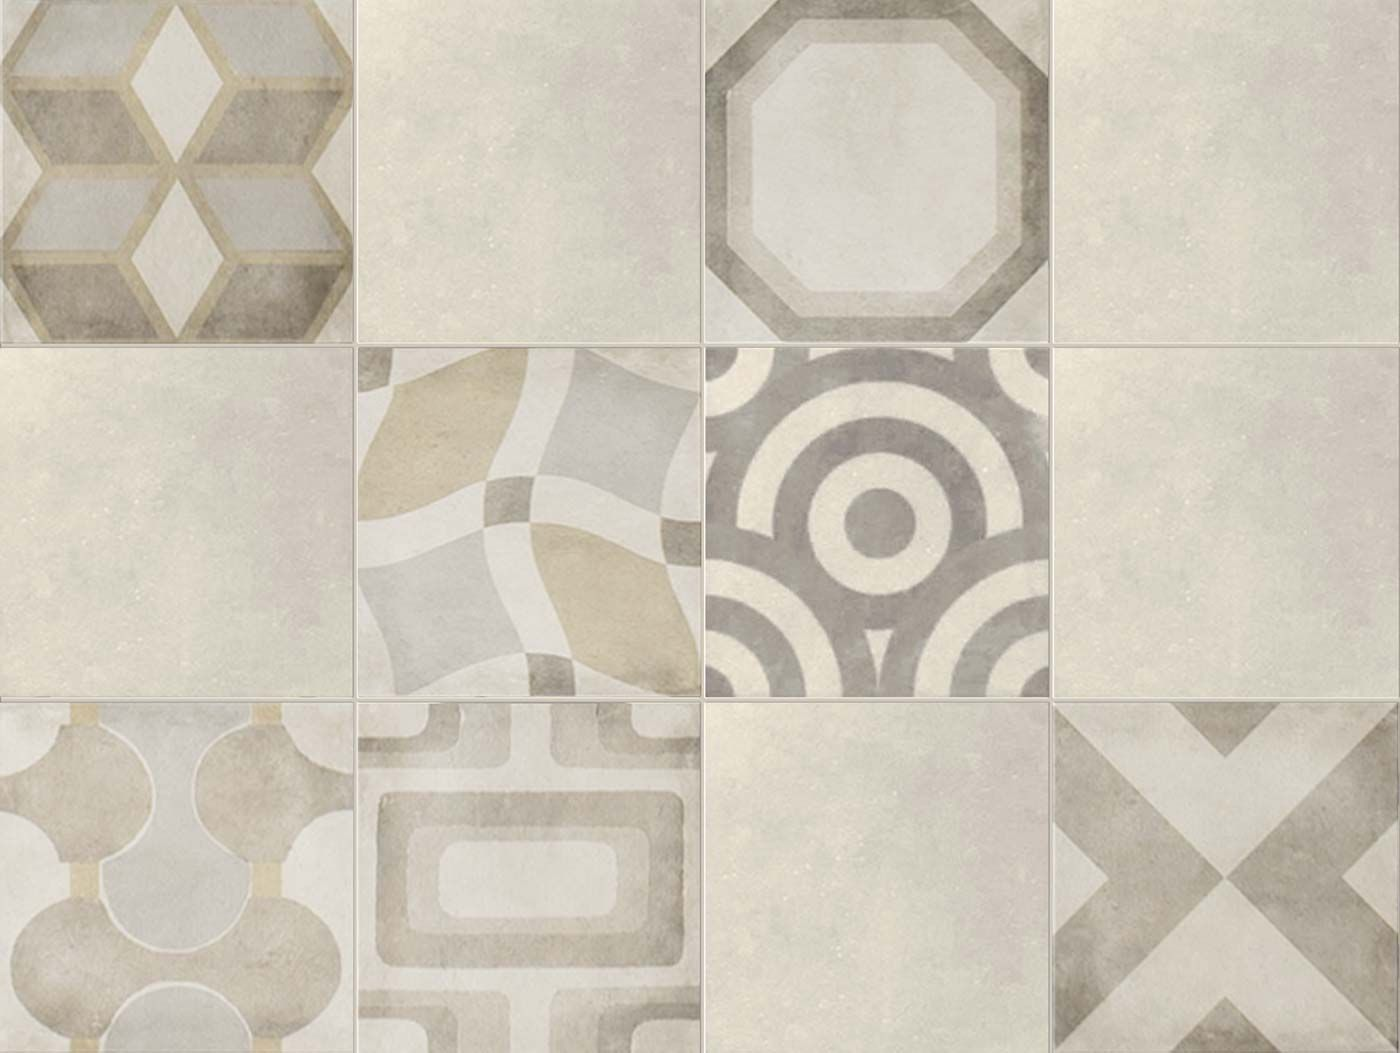 Tiles For Wall Decor Classy Pinf B On Pllaka  Pinterest  Sitting Rooms Wall Tiles And Decorating Inspiration